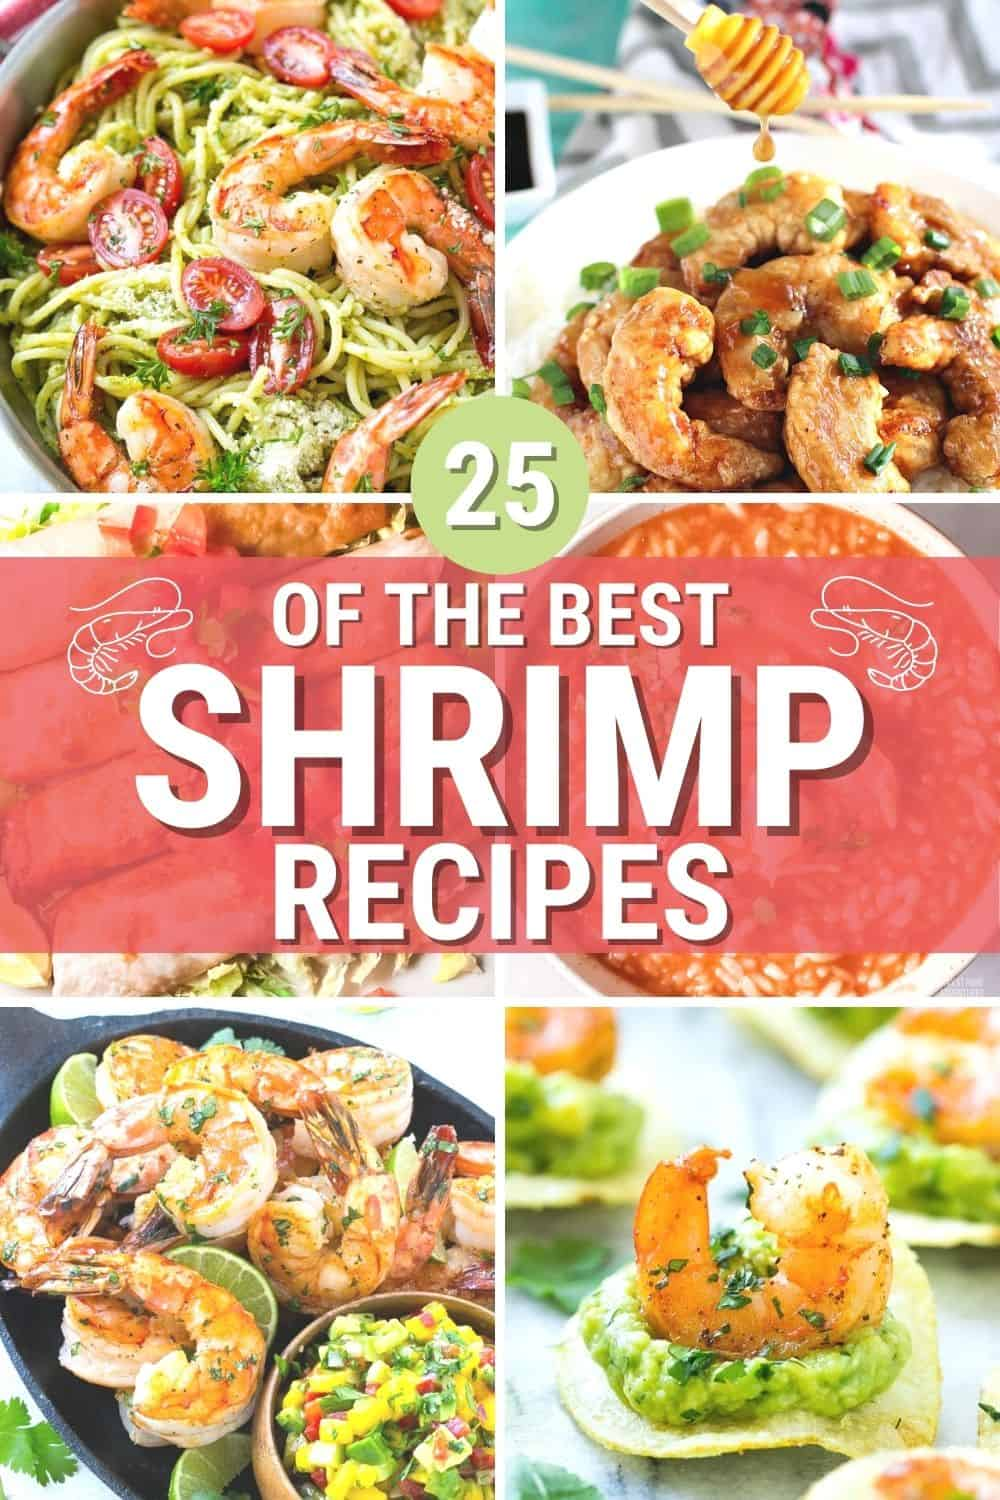 Check out these 25 amazing shrimp recipes to choose from for dinner any night of the week! From shrimp tacos to shrimp ceviche. via @mystayathome